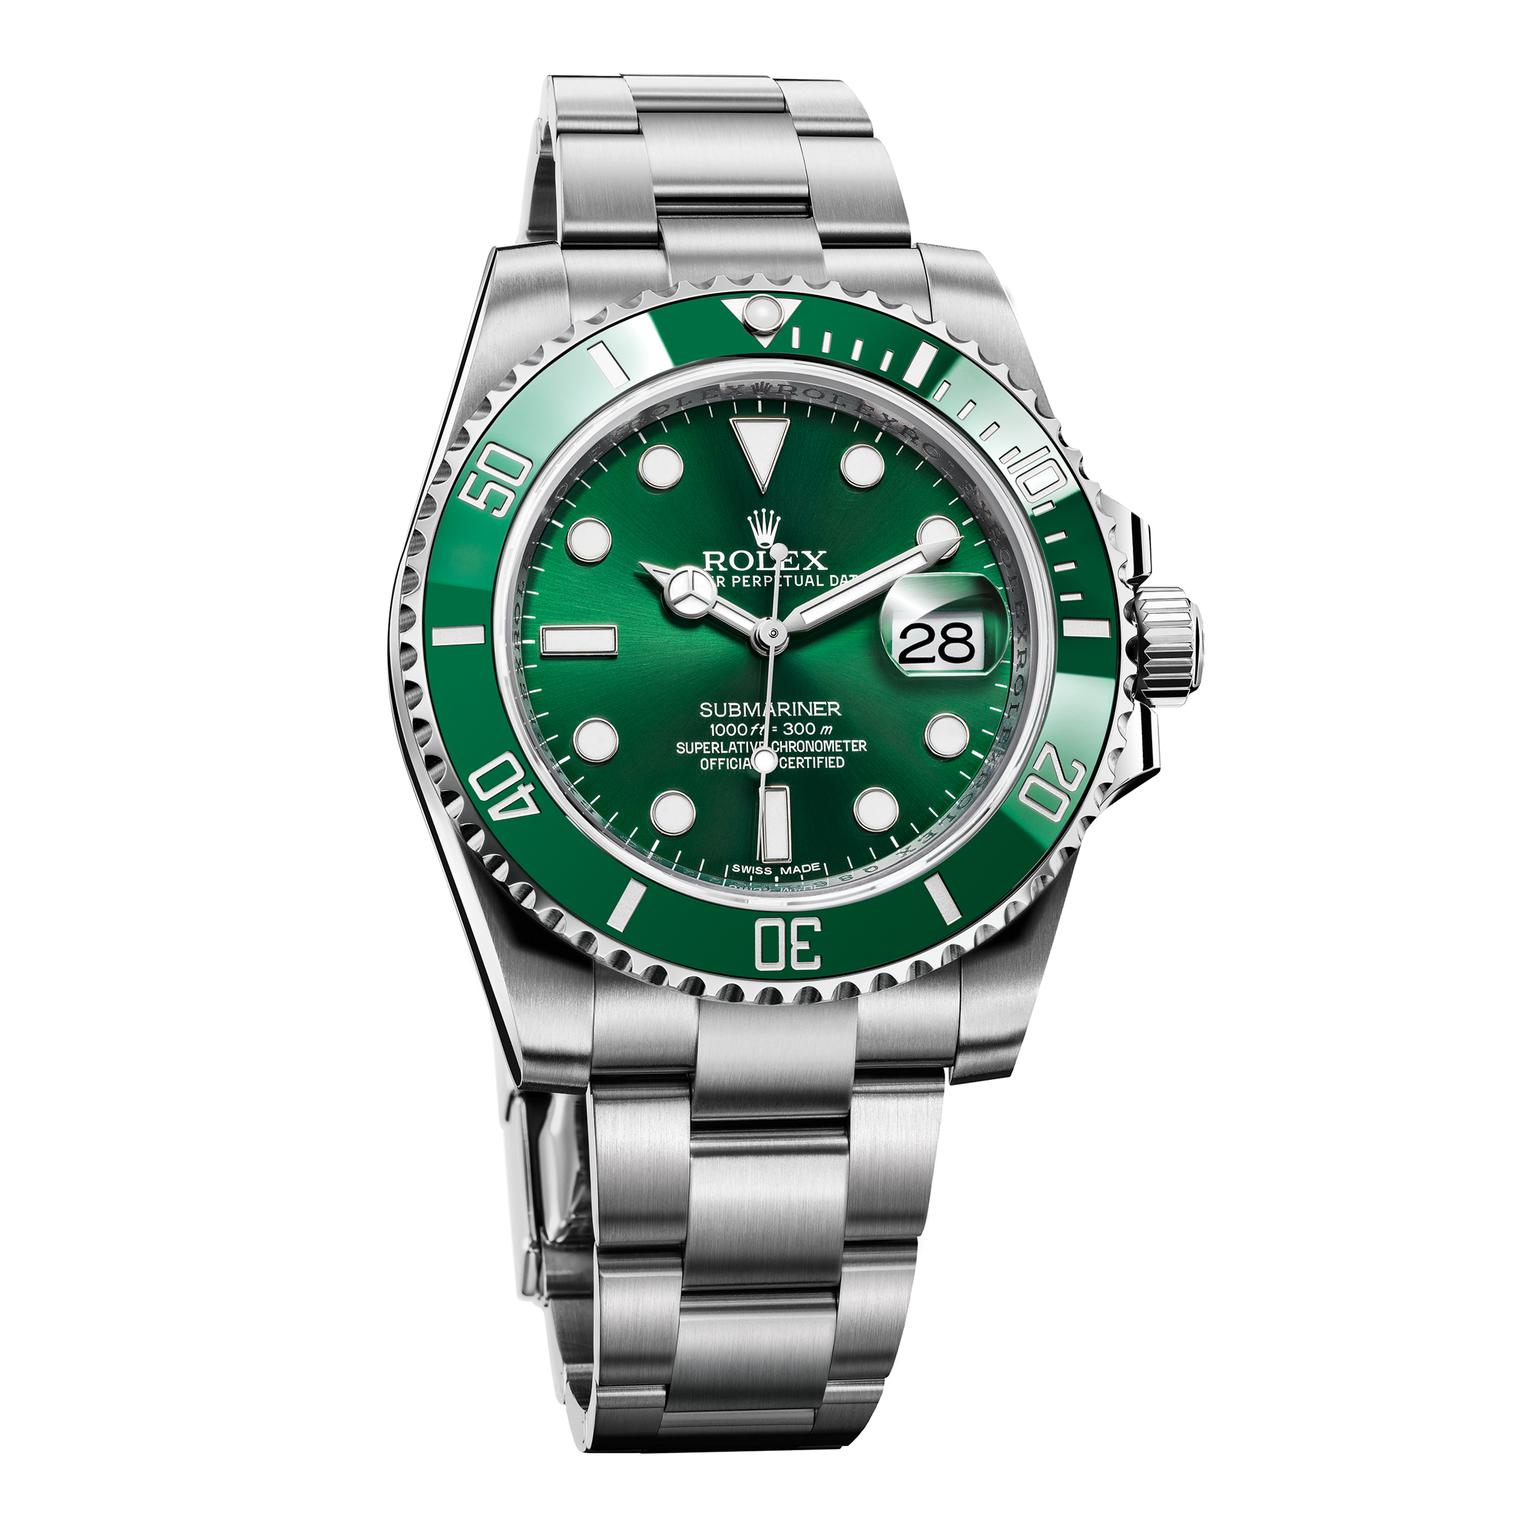 Rolex Submariner green ceramic watch